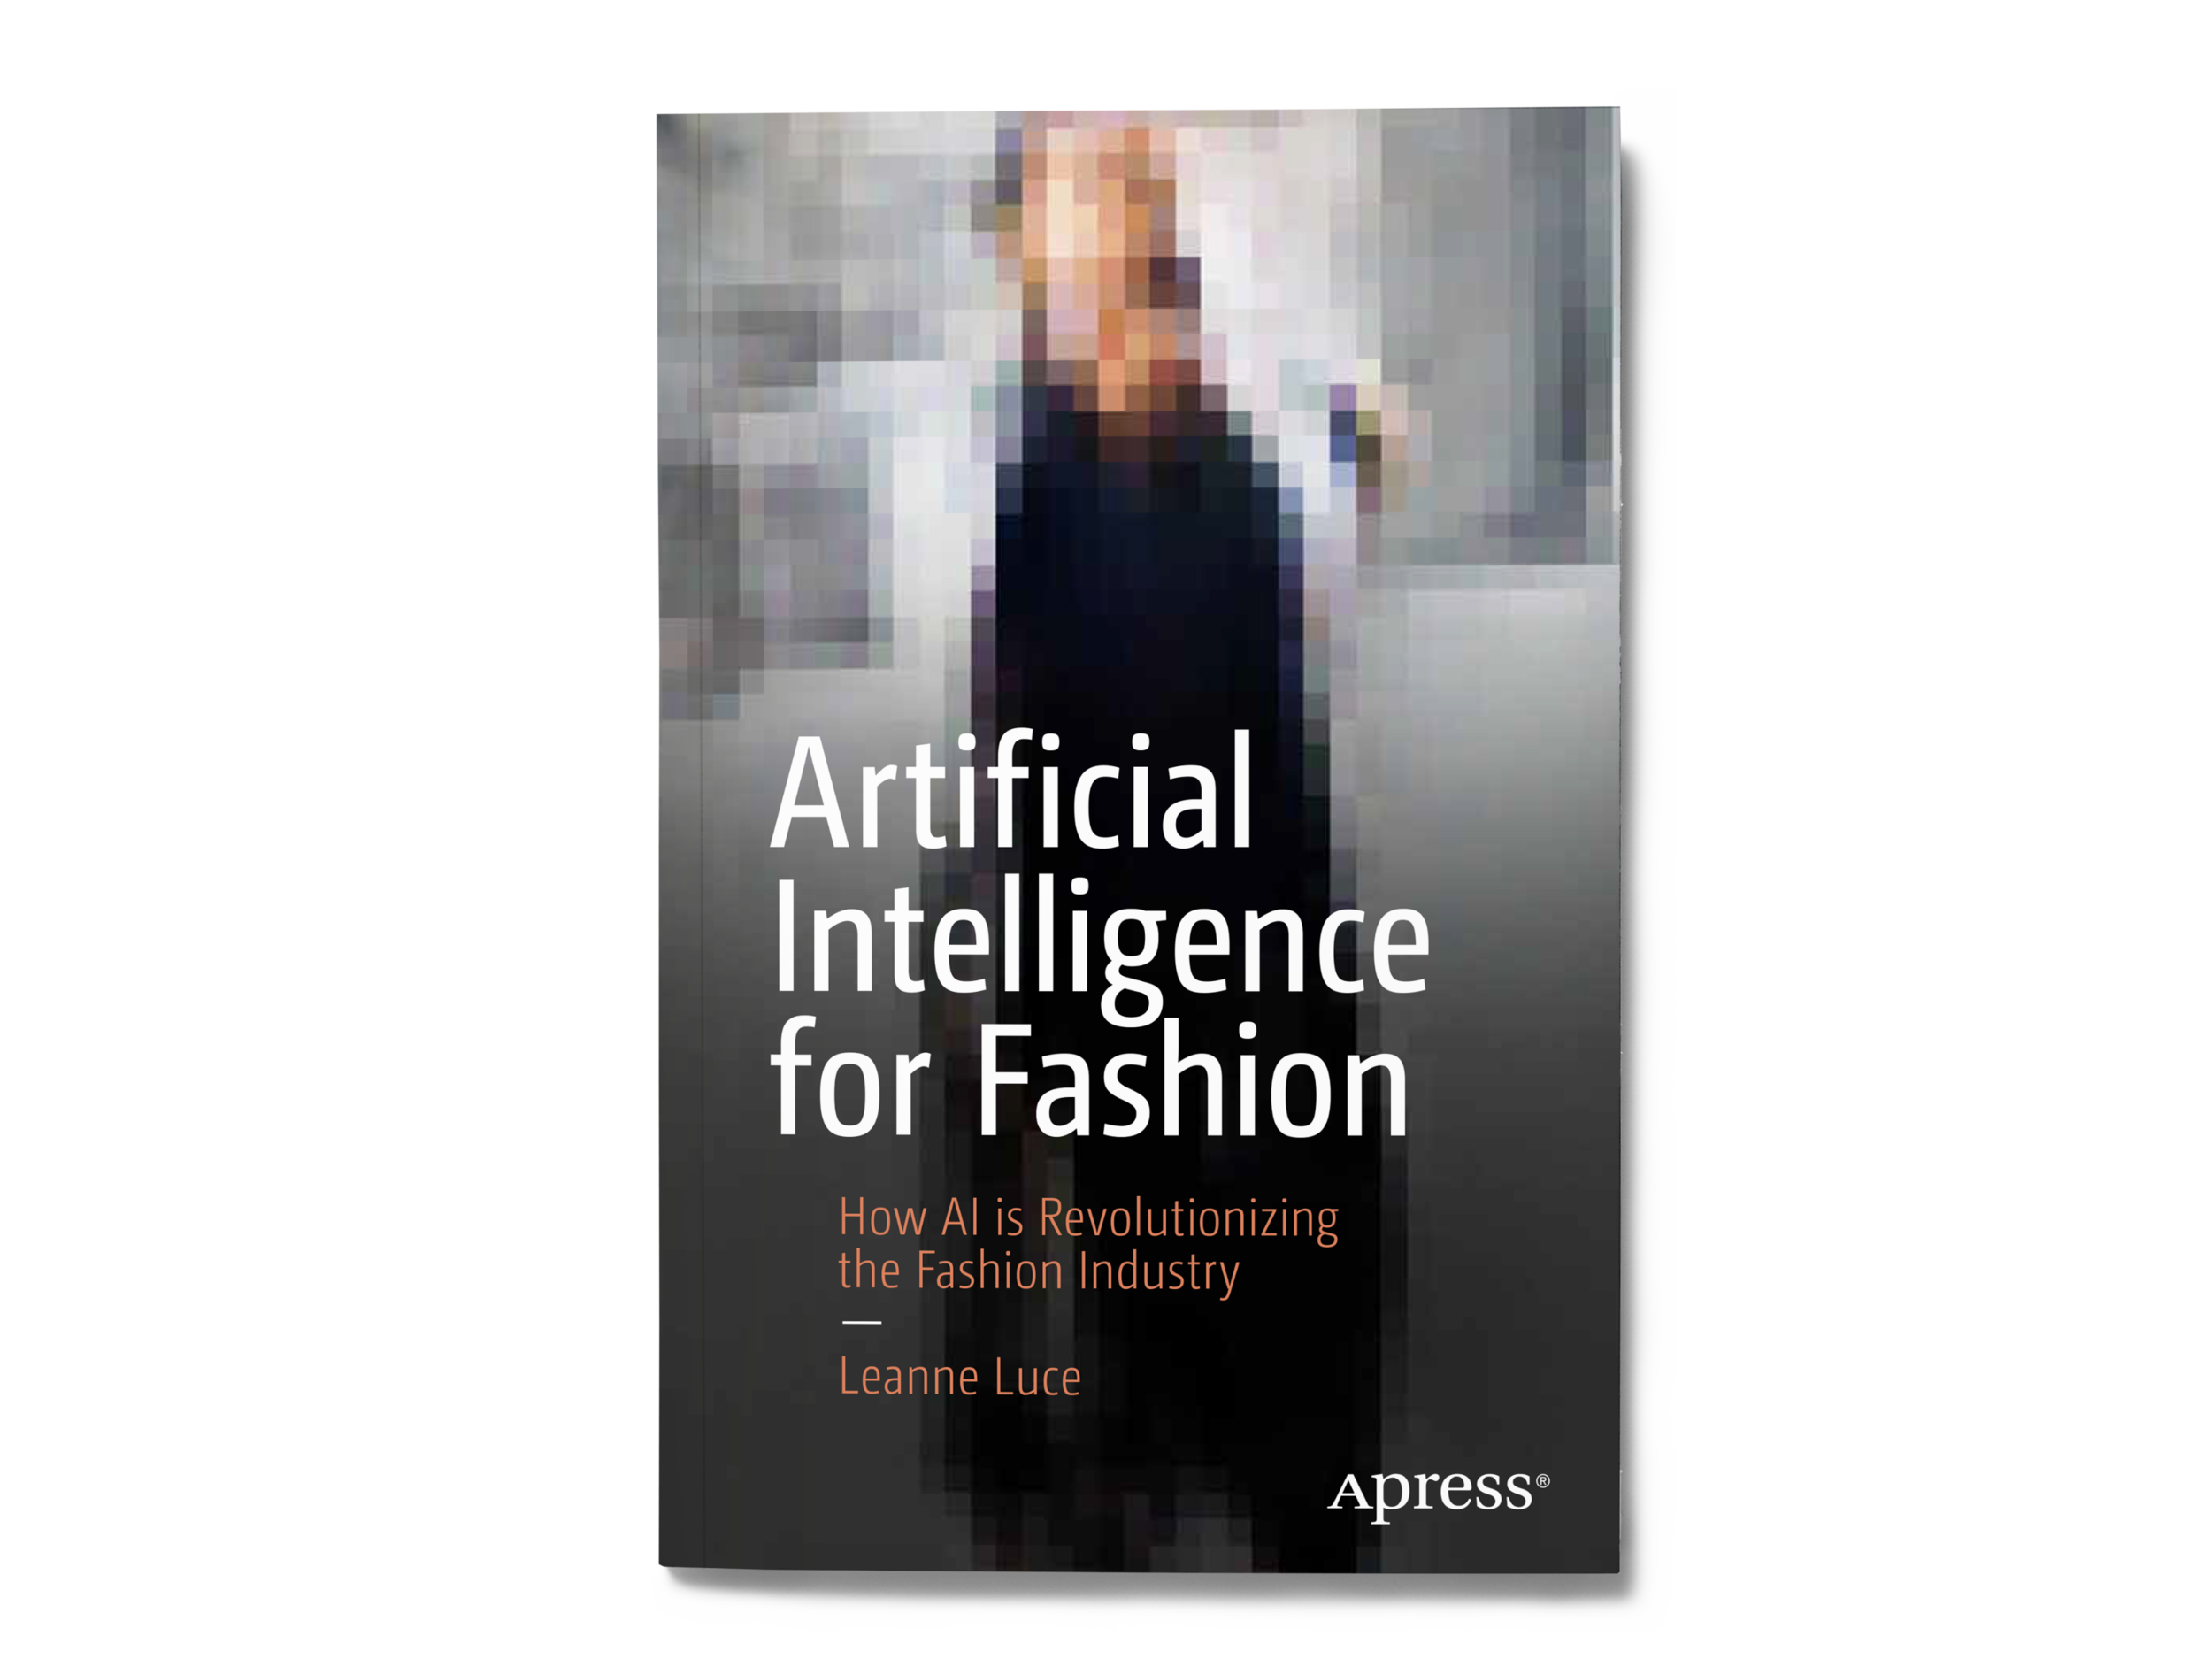 artificial intelligence for fashion: how AI is revolutionizing the fashion industry; apress by leanne luce